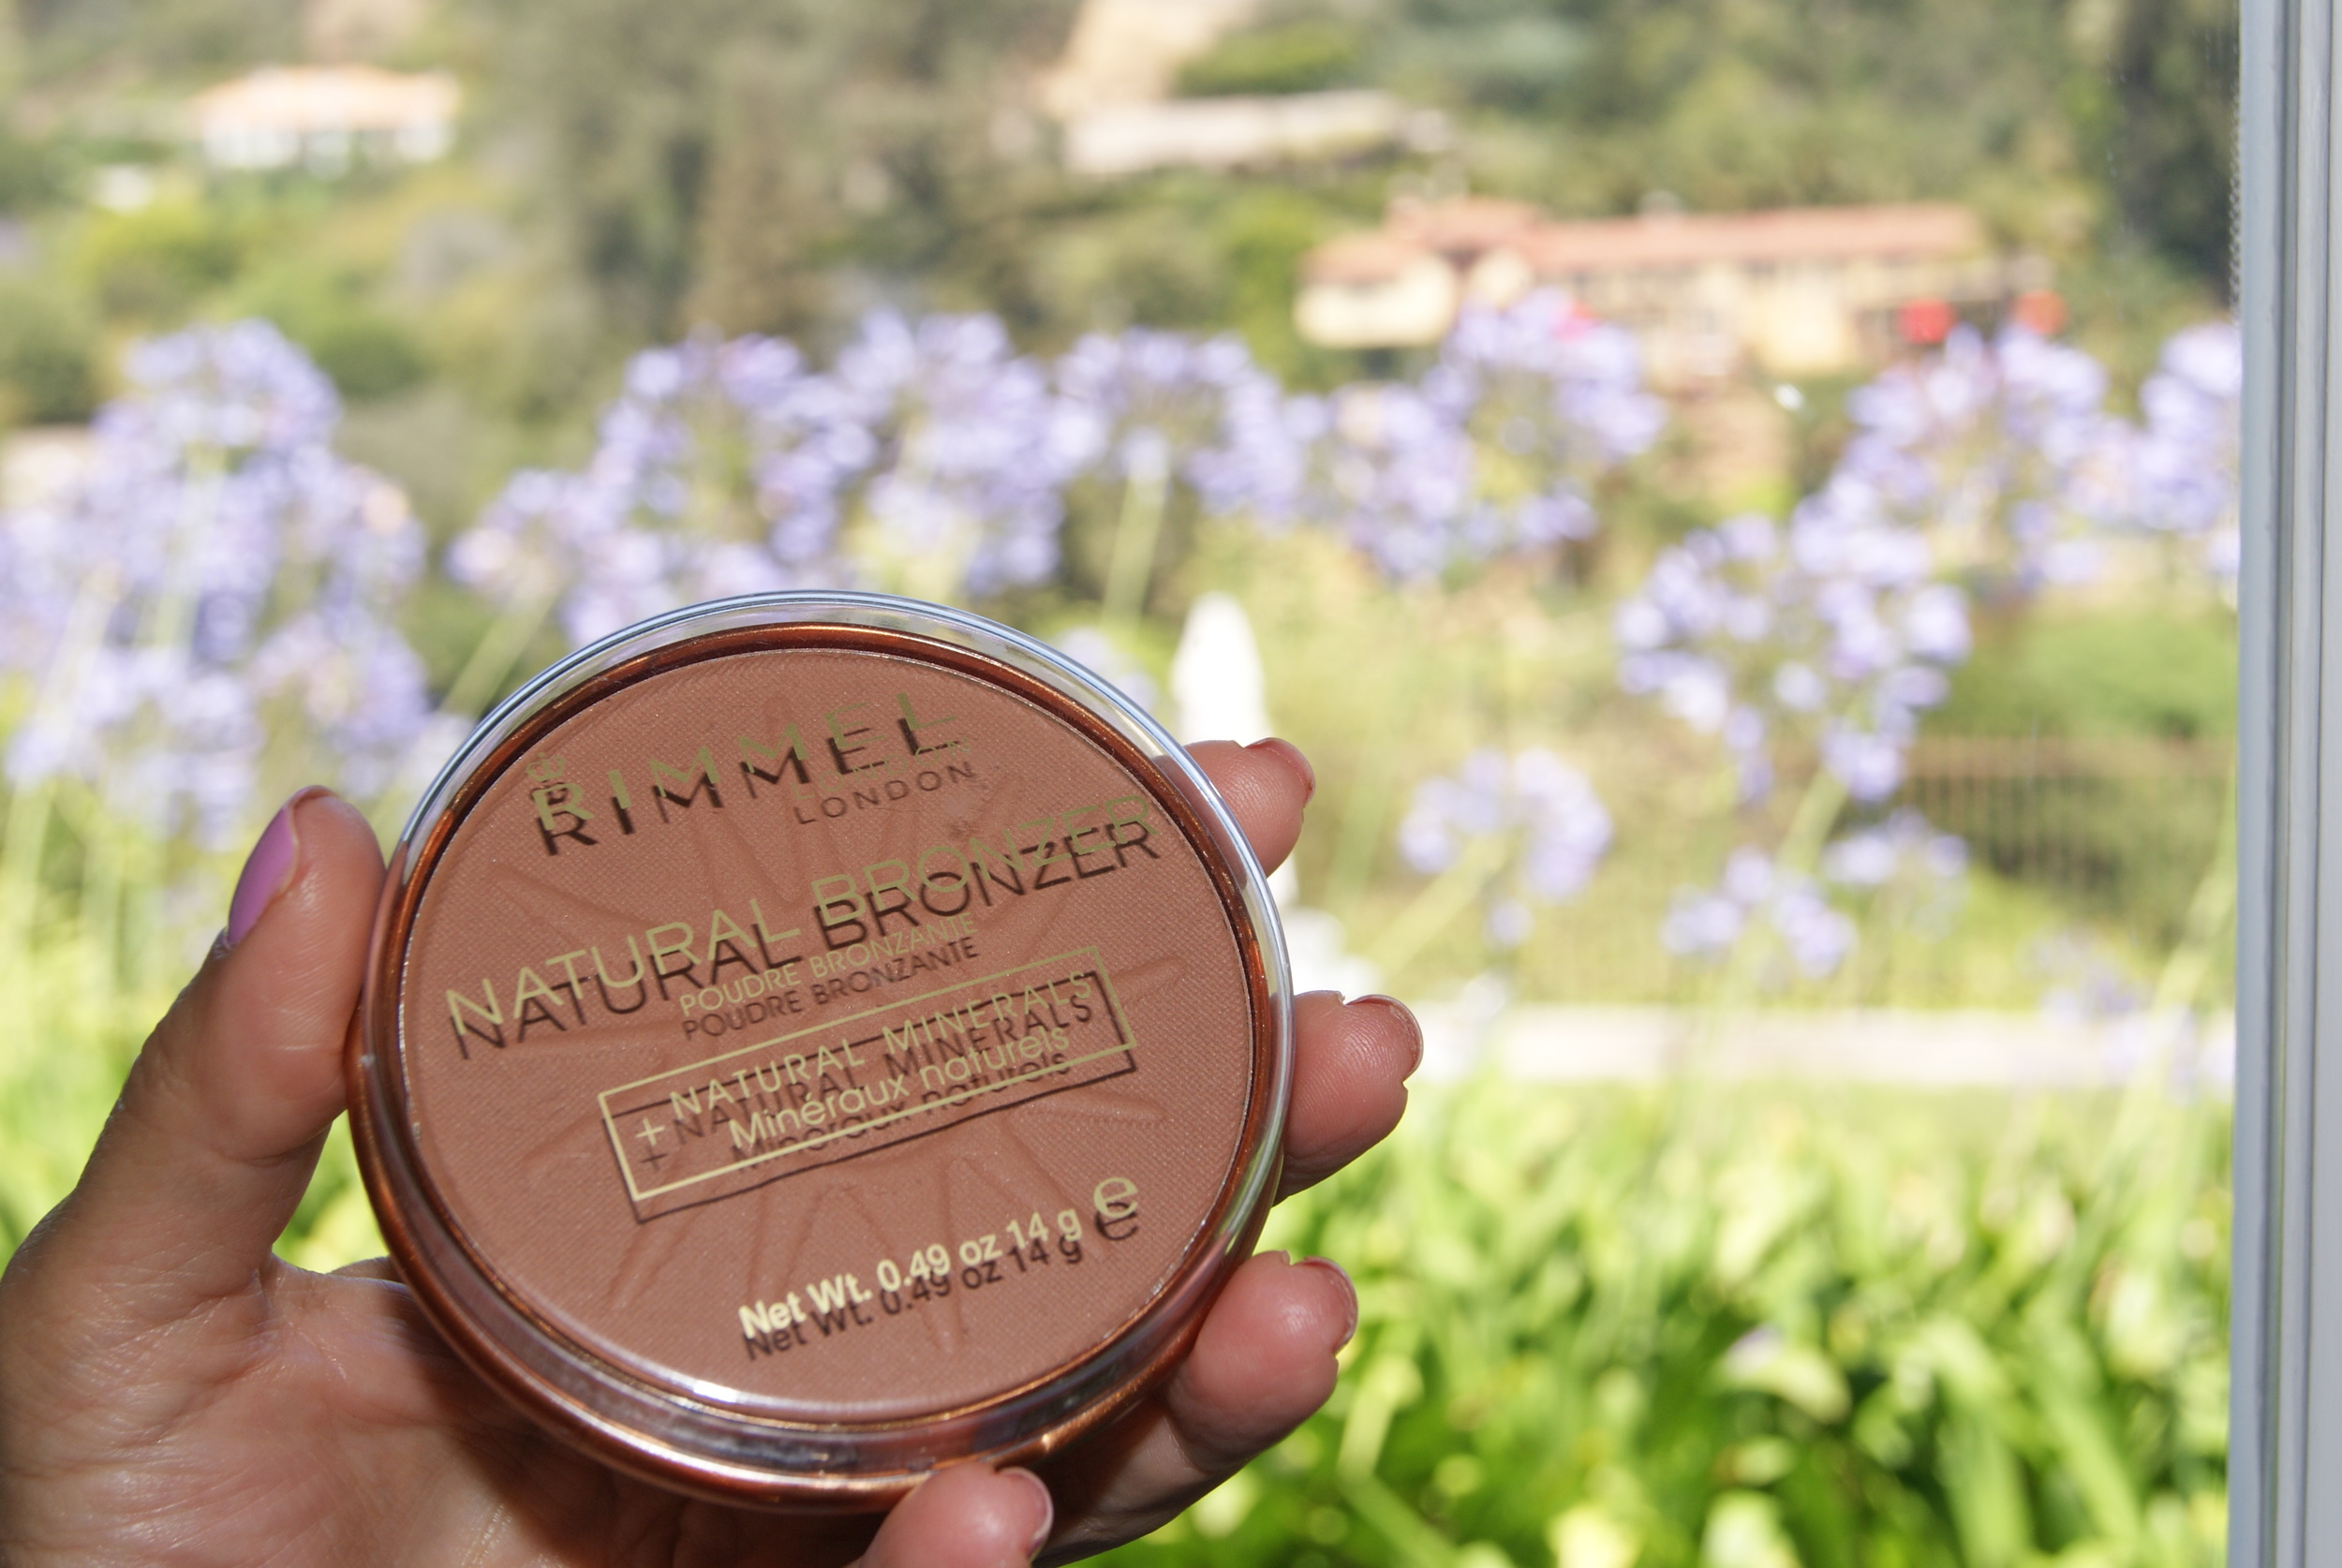 Rimmel London Natural Bronzer  gives you a natural sun-kissed glow! I like to dust it on my cheeks, nose forehead and chin for an overall bronzed look.